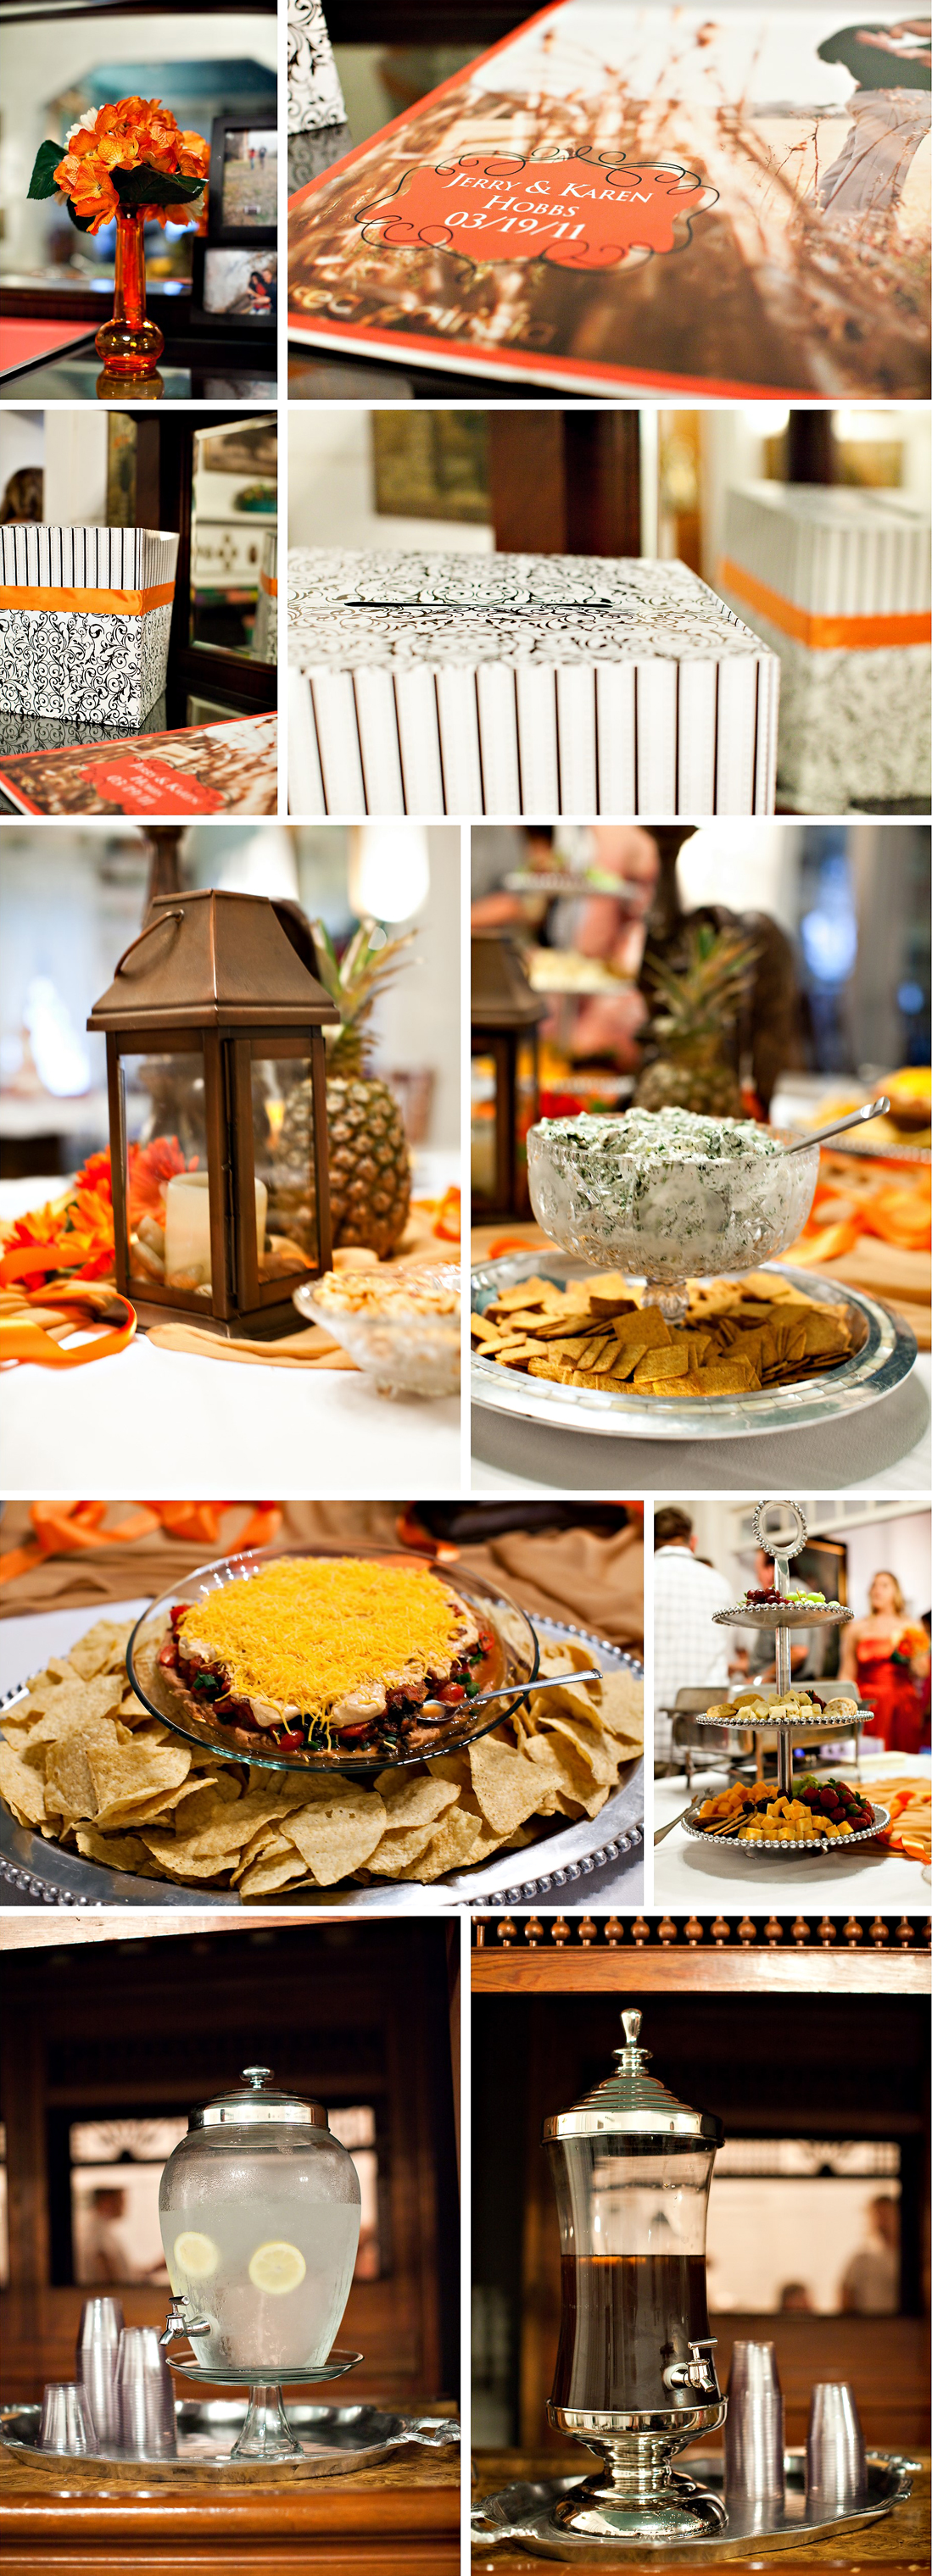 r-09-king's-table-catering.jpg